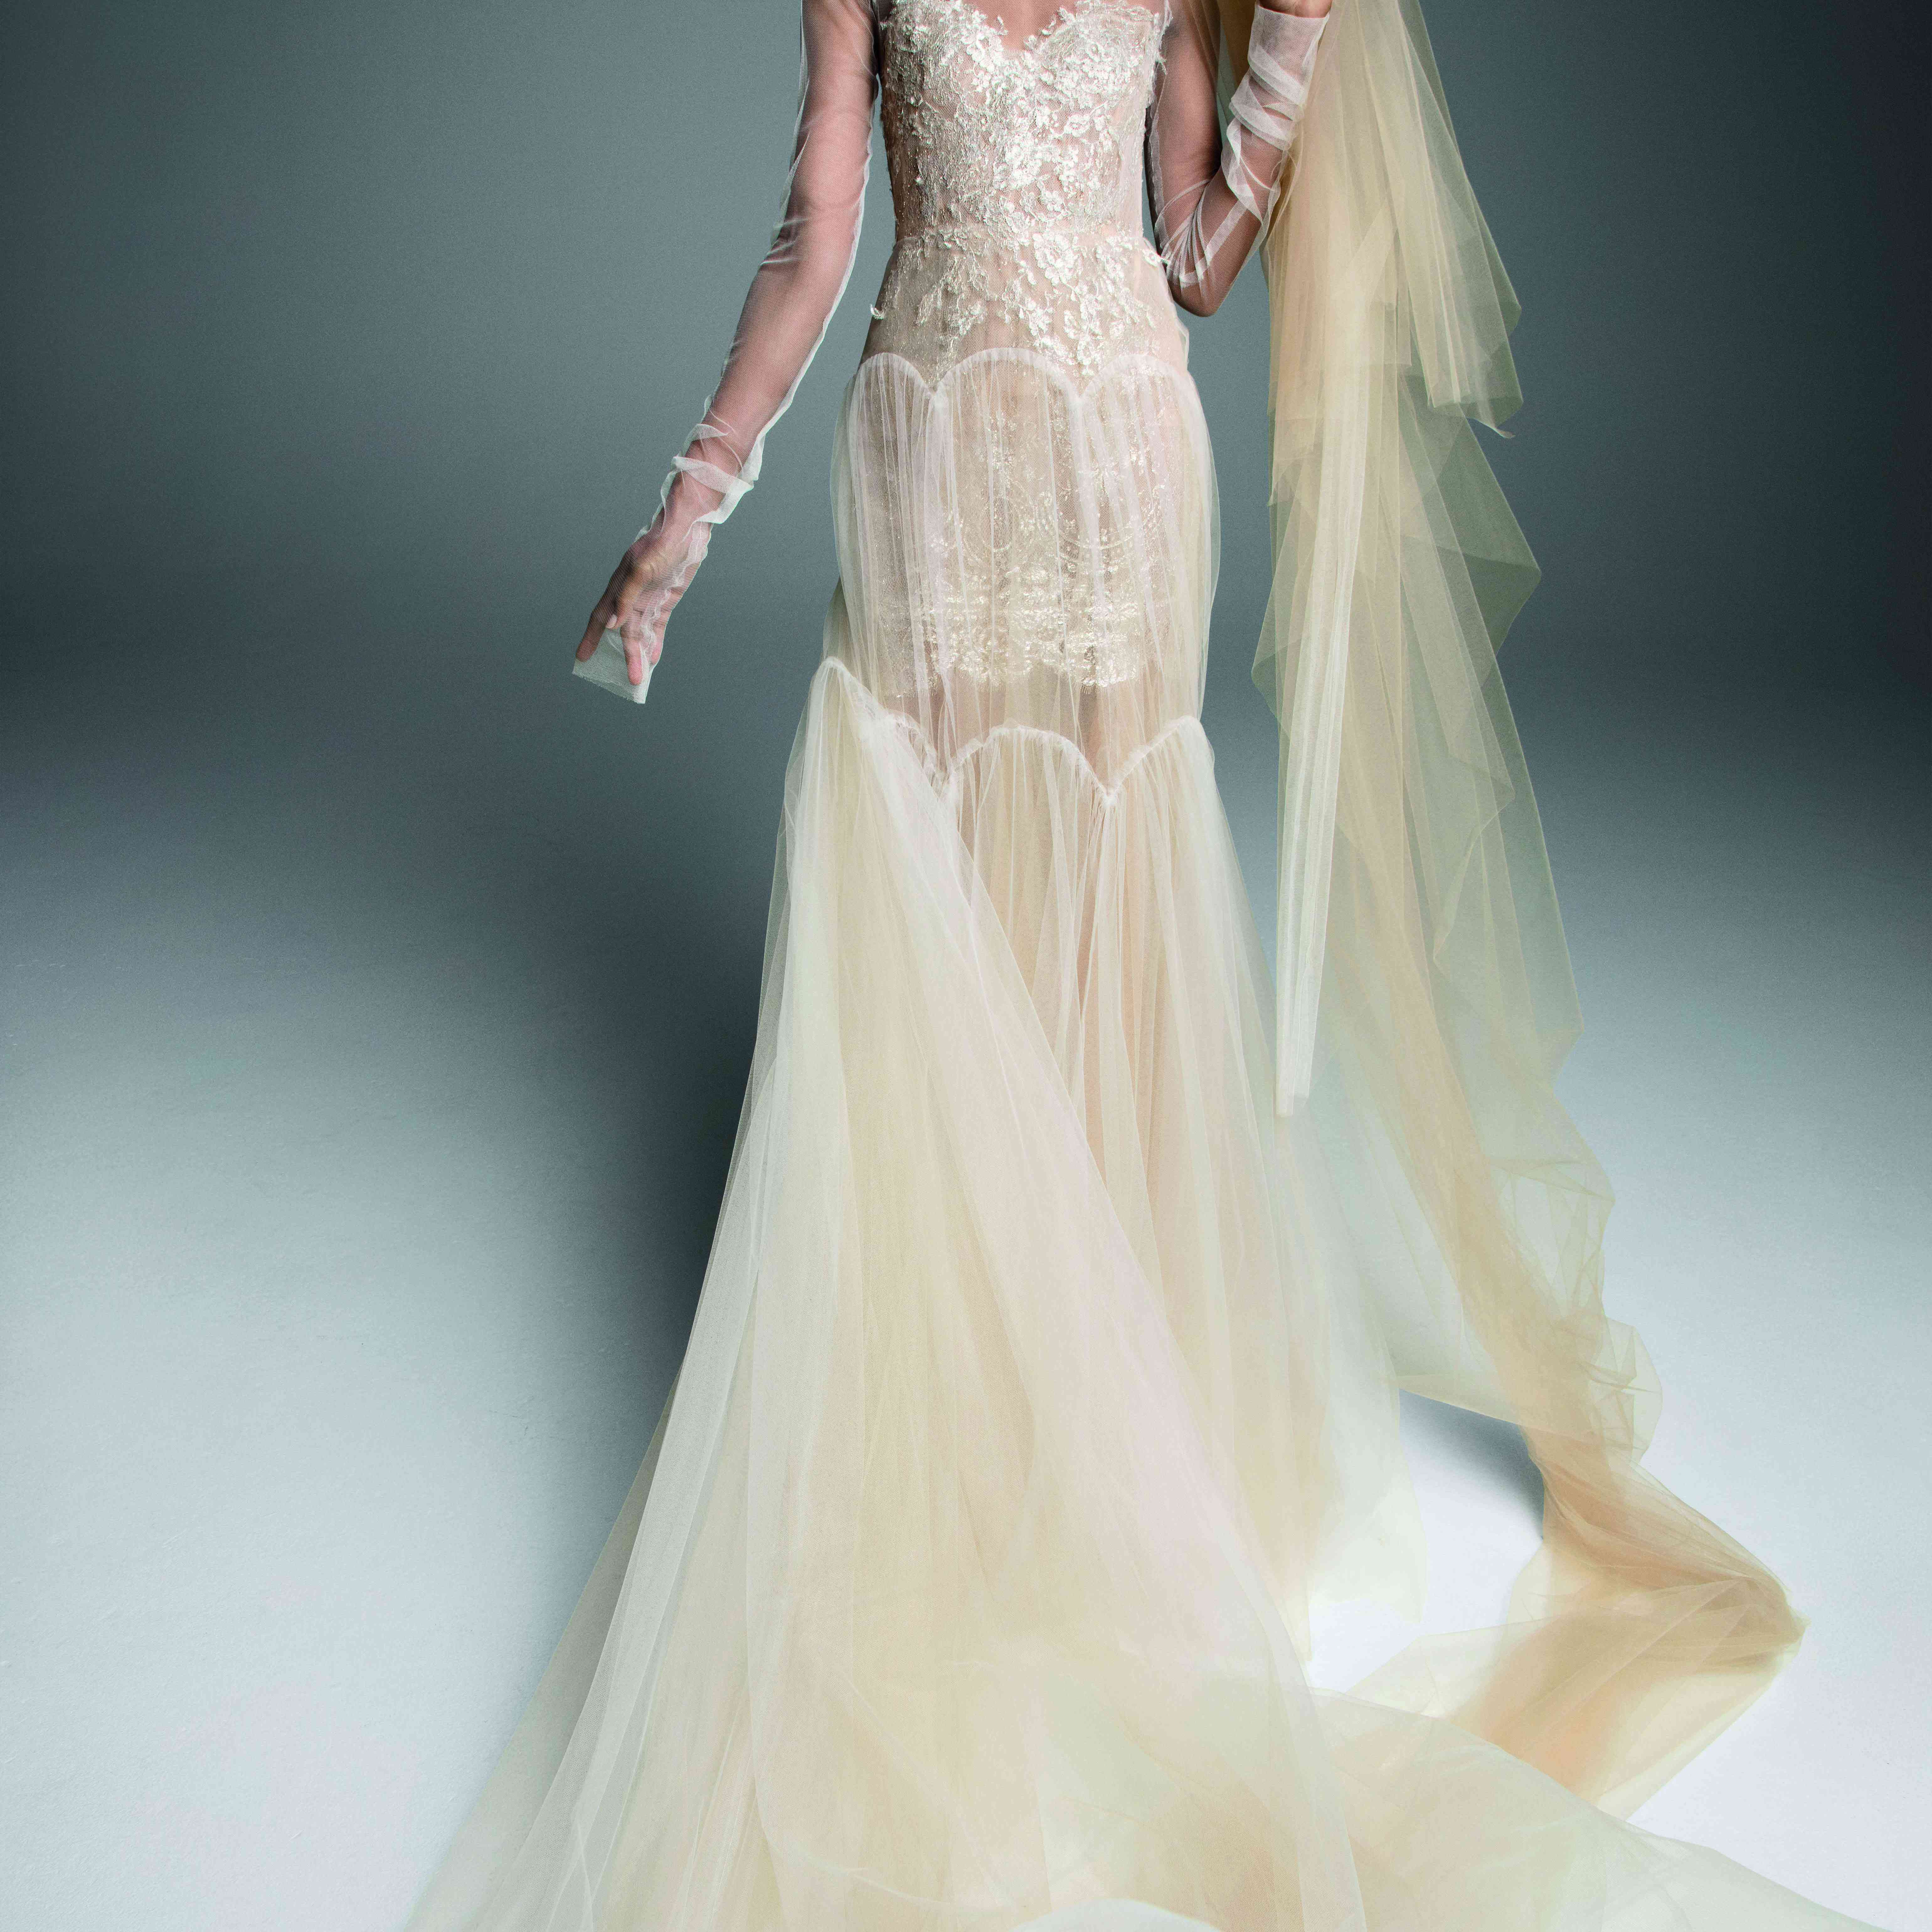 Model in ivory and nude tulle long-sleeve gown with a tiered skirt and lace accents on the bodice and neck